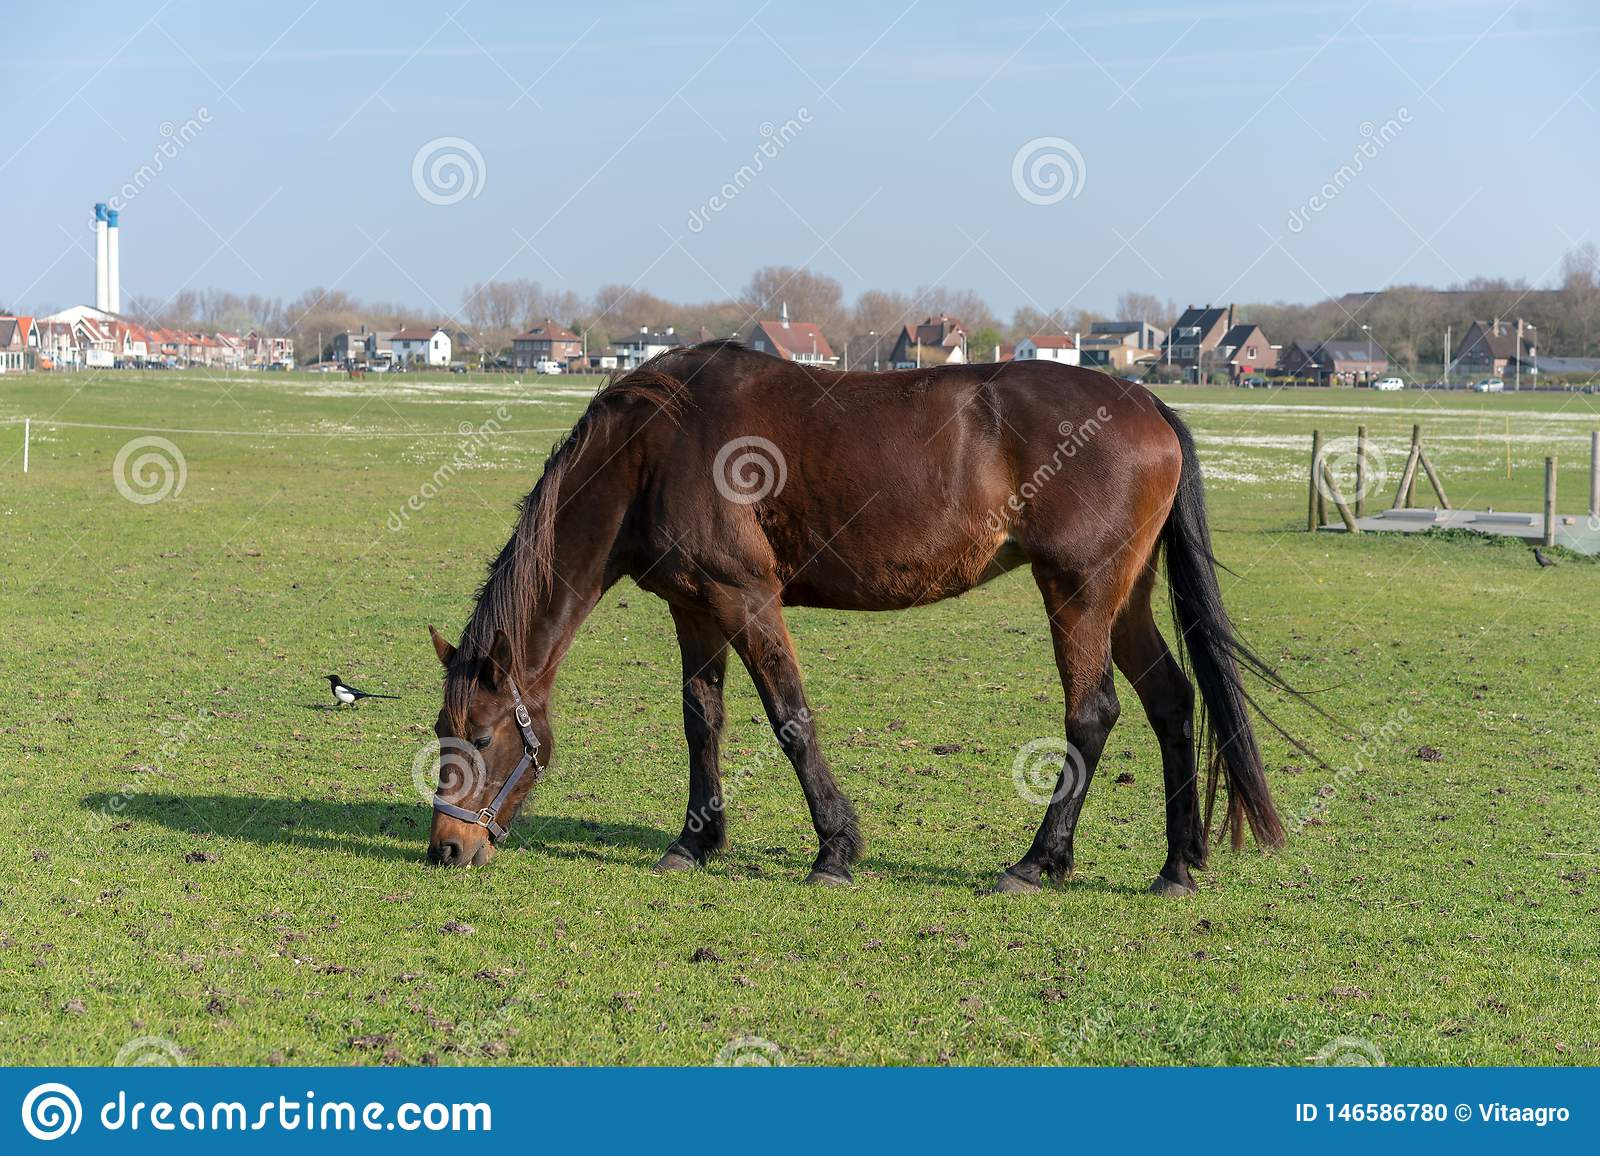 The young horse who is grazed on a summer meadow